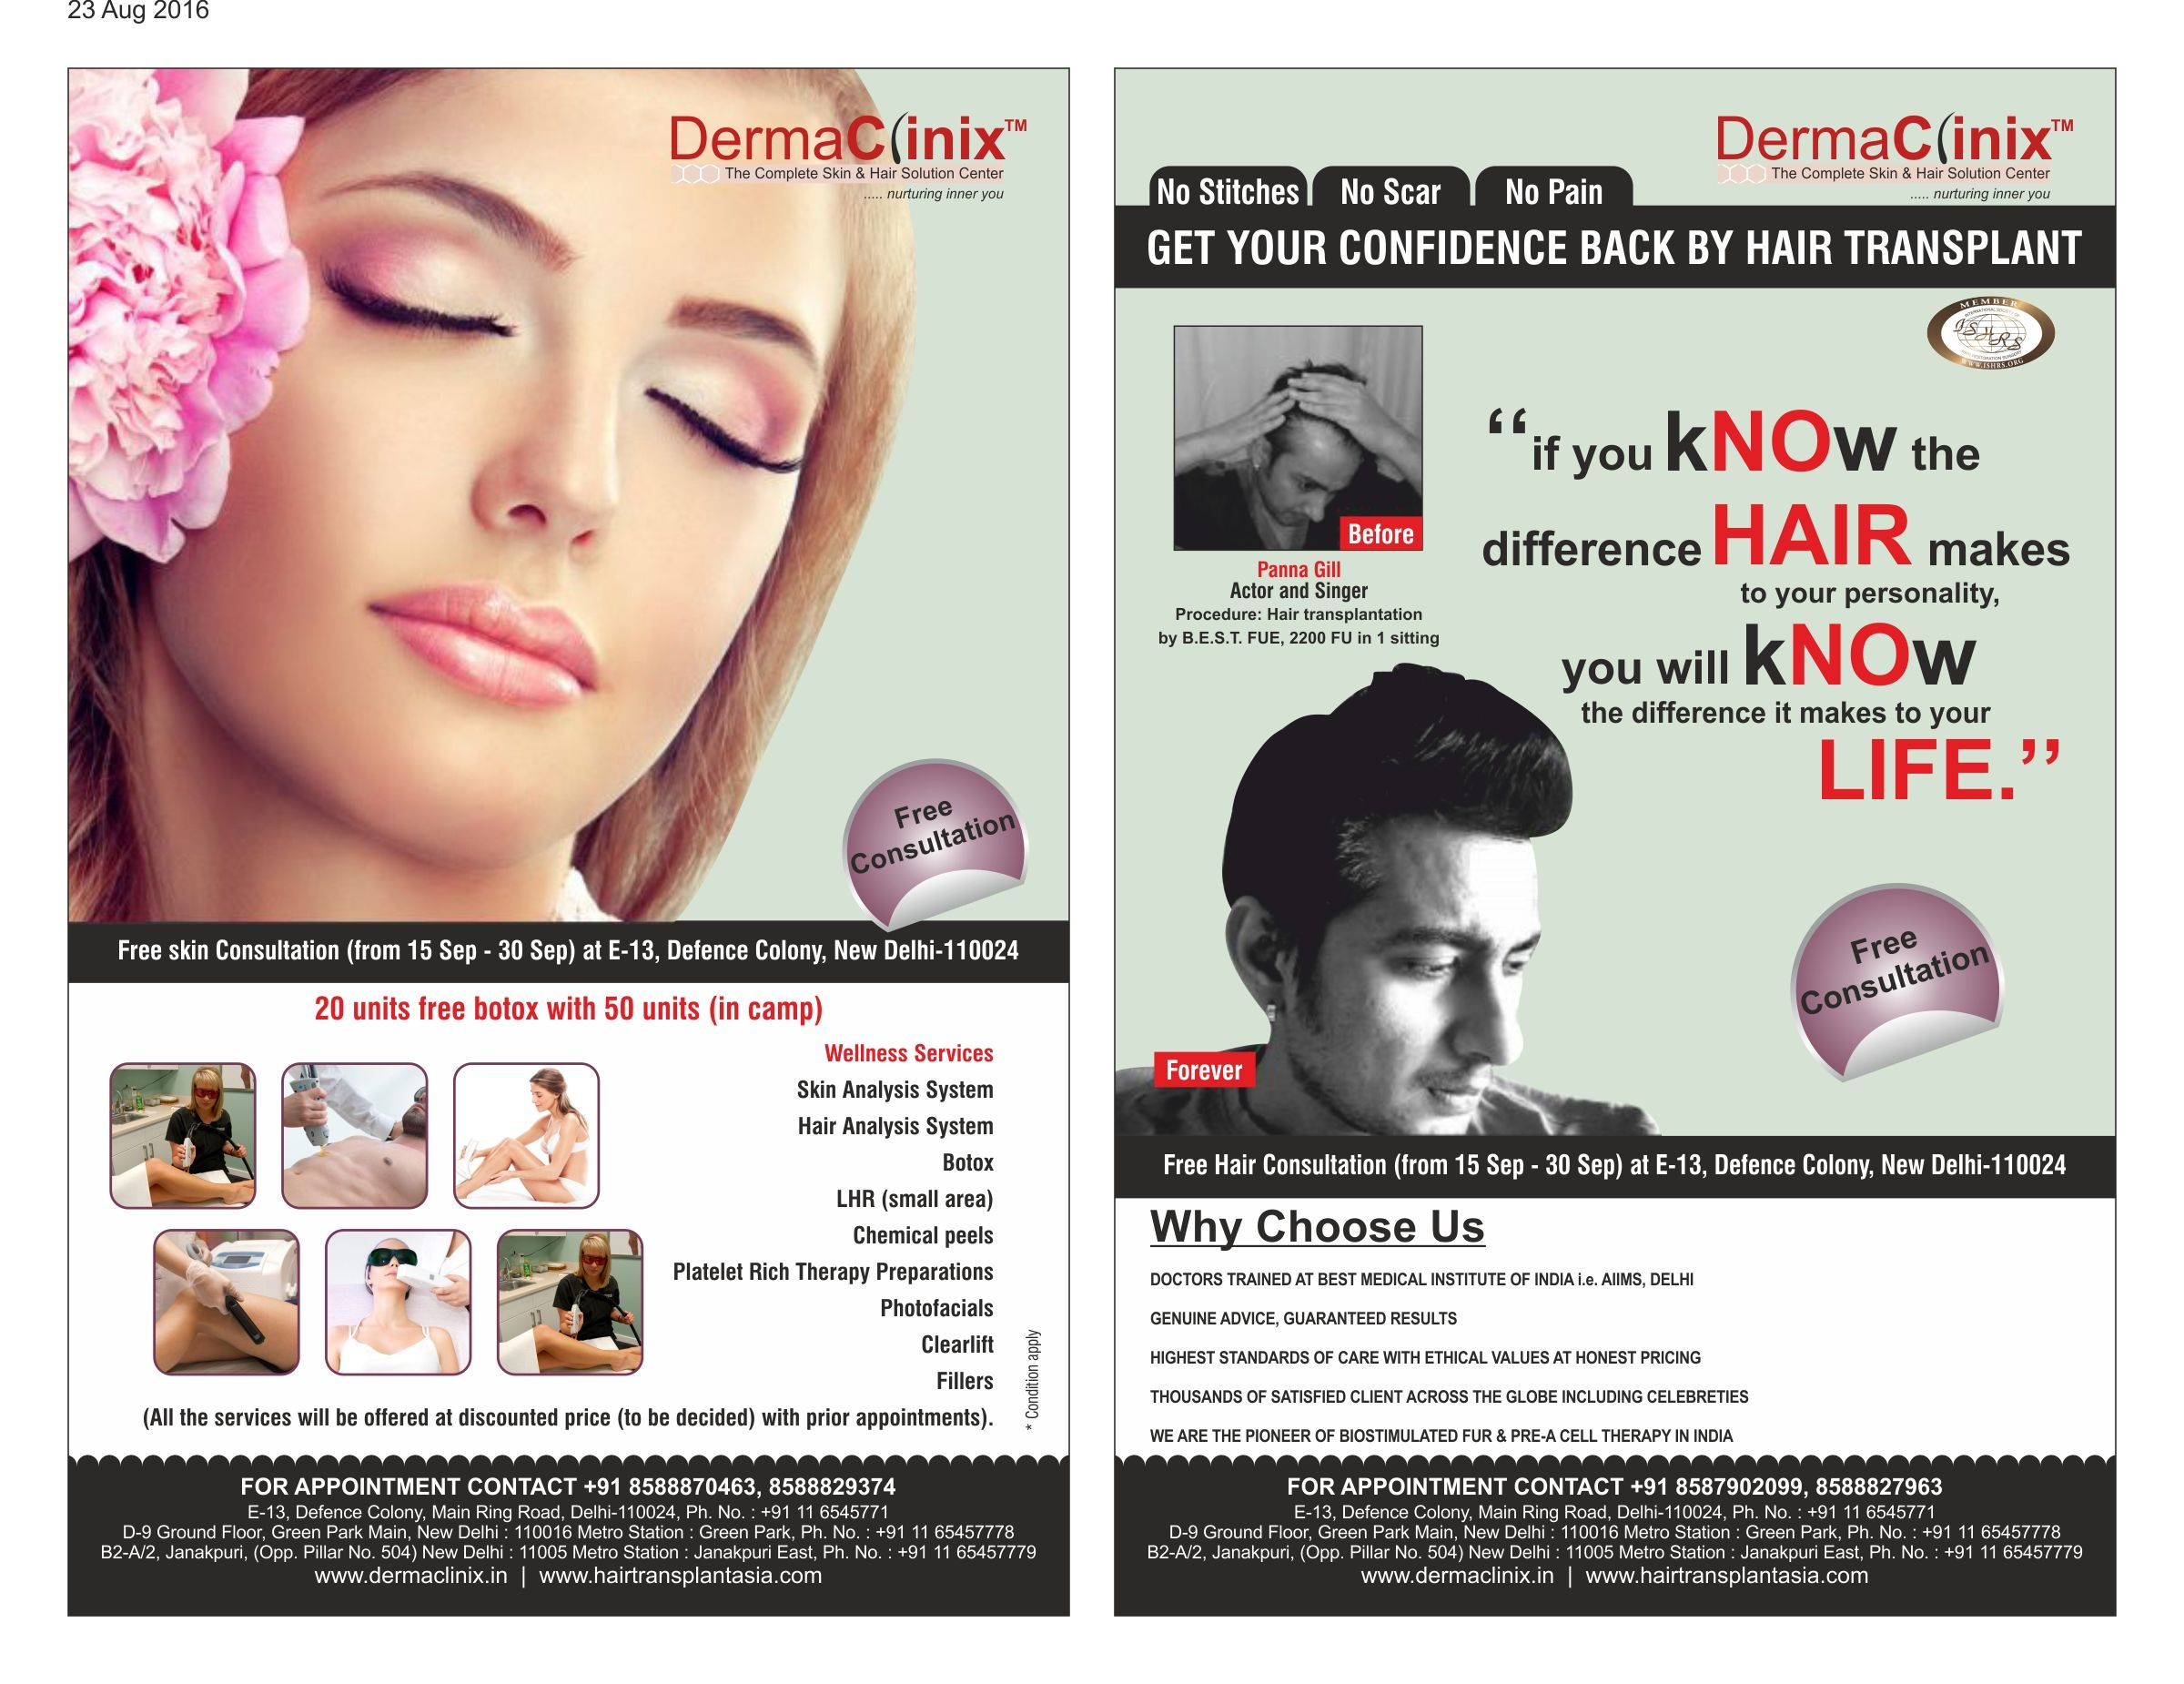 DermaClinix is organizing a free Skin and Hair Analysis